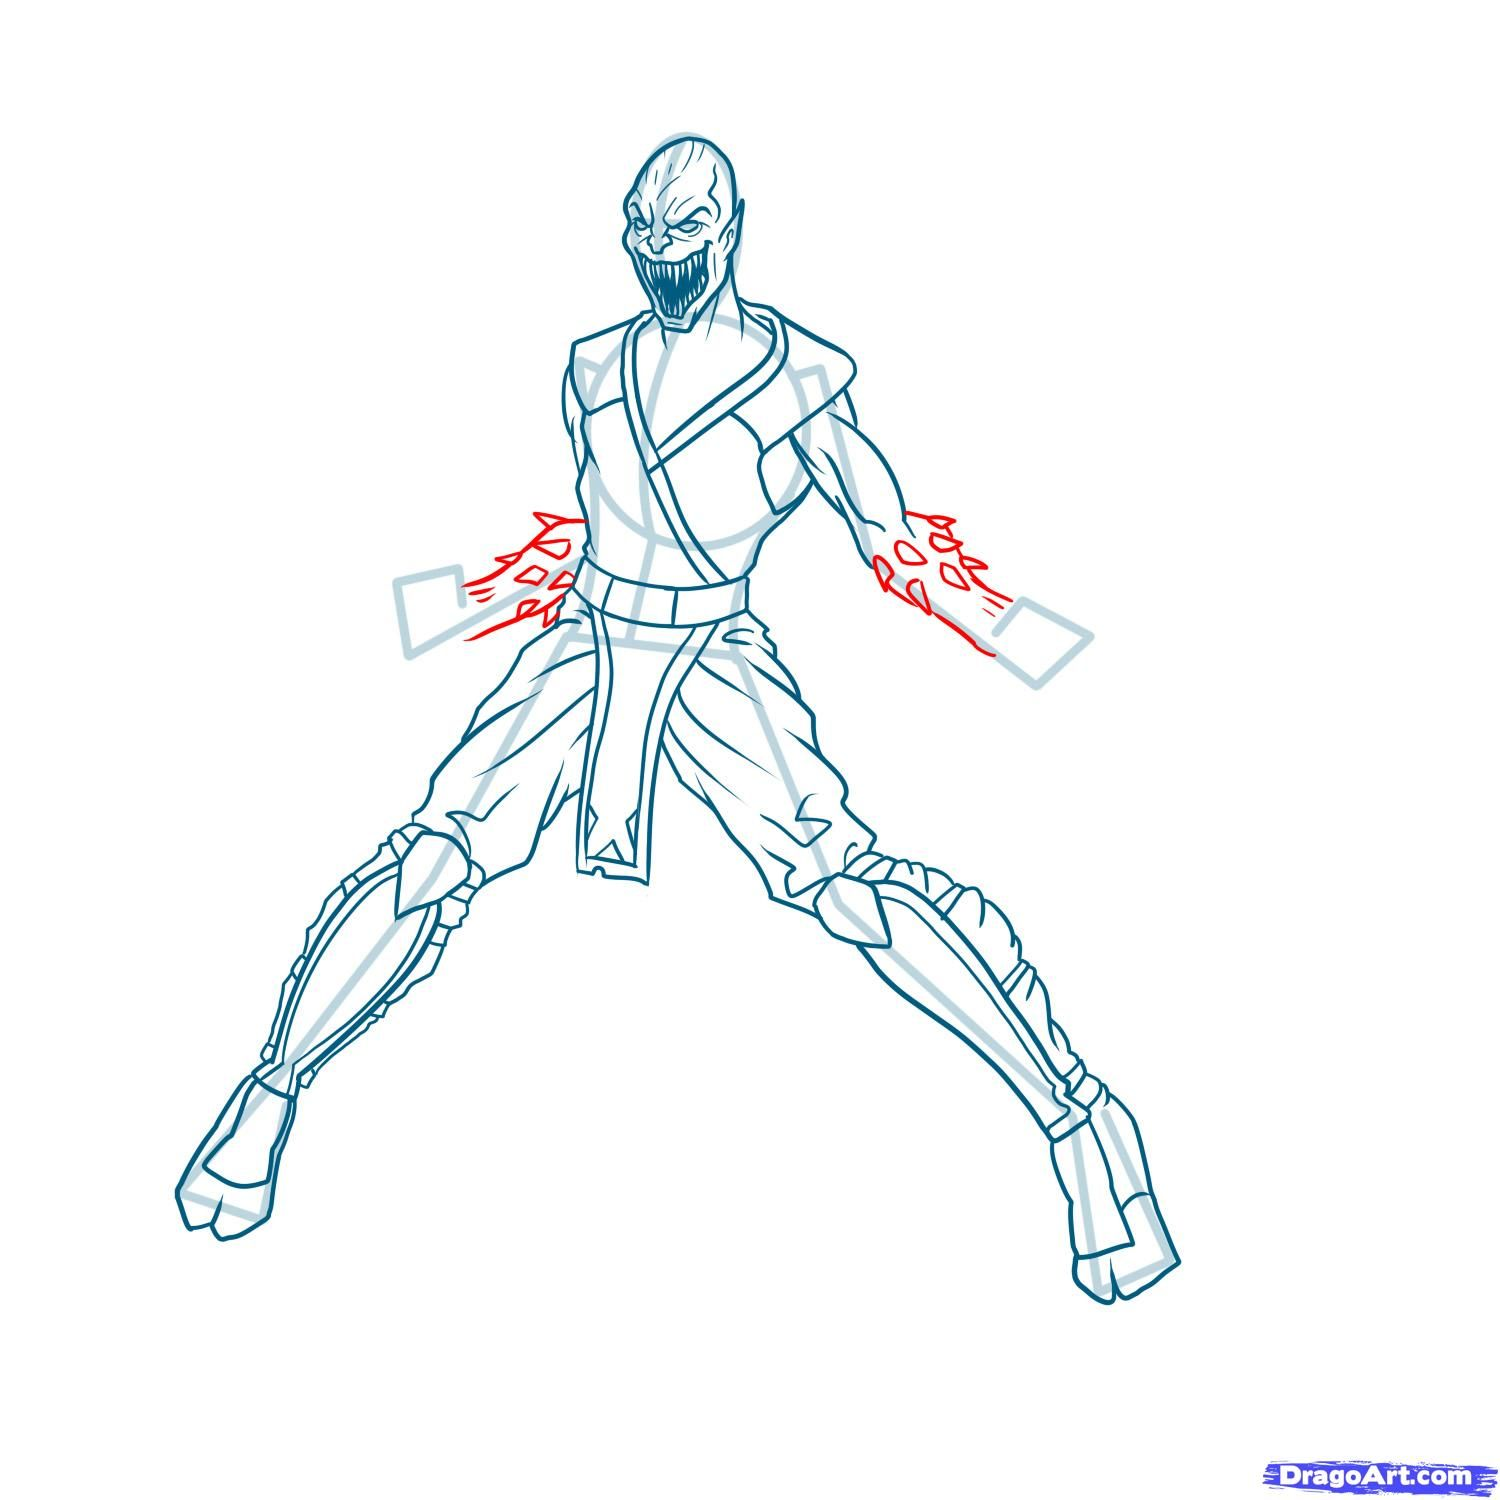 How to draw the Scorpion to the utmost from Mortal Kombat with a pencil step by step 14